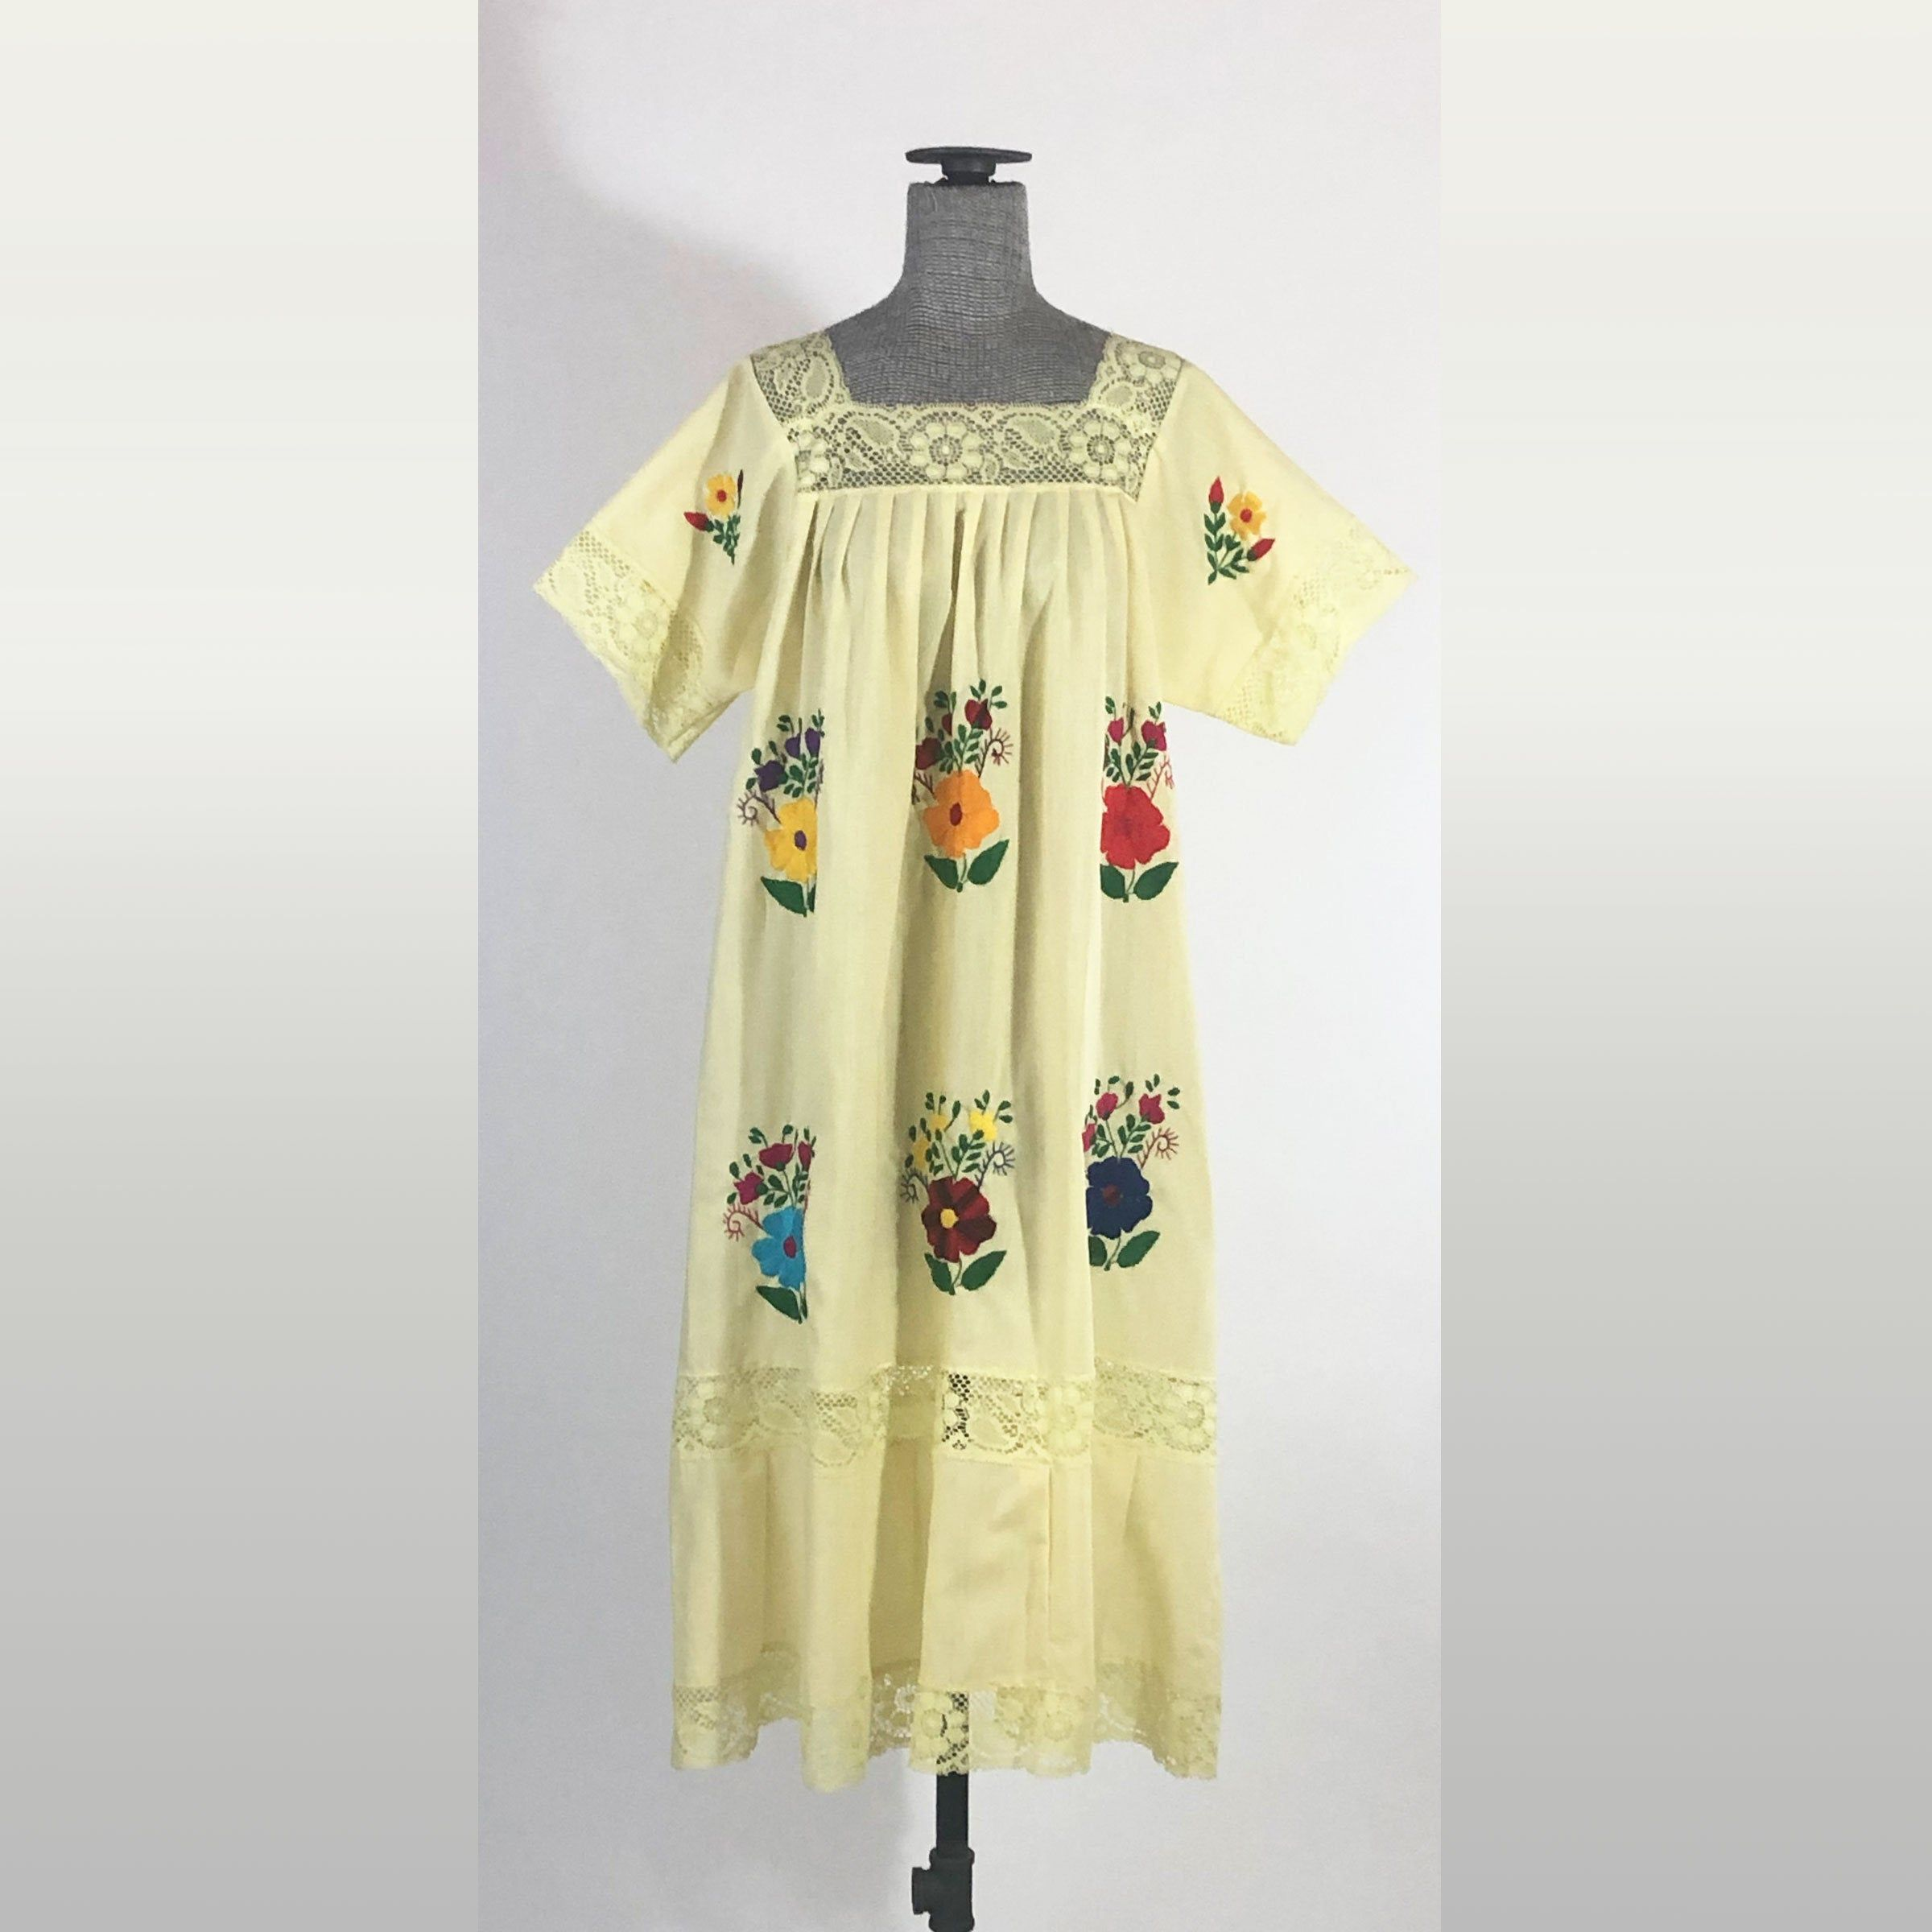 Vintage Pale Yellow Hand Embroidered Mexican Dress Floral Etsy Mexican Dresses Yoke Dress Dresses [ 2400 x 2400 Pixel ]